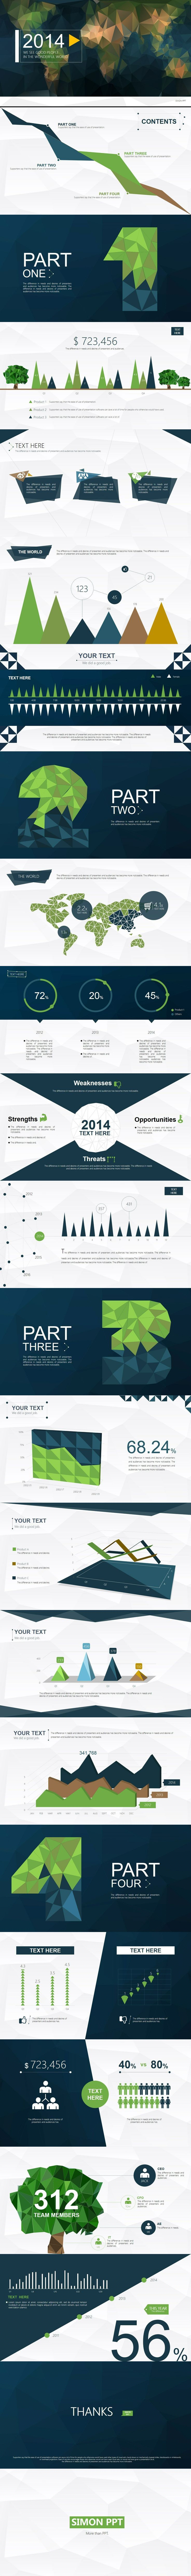 PPT Template Designed by Simon. Download: http://www.pptstore.net/...  #infographics